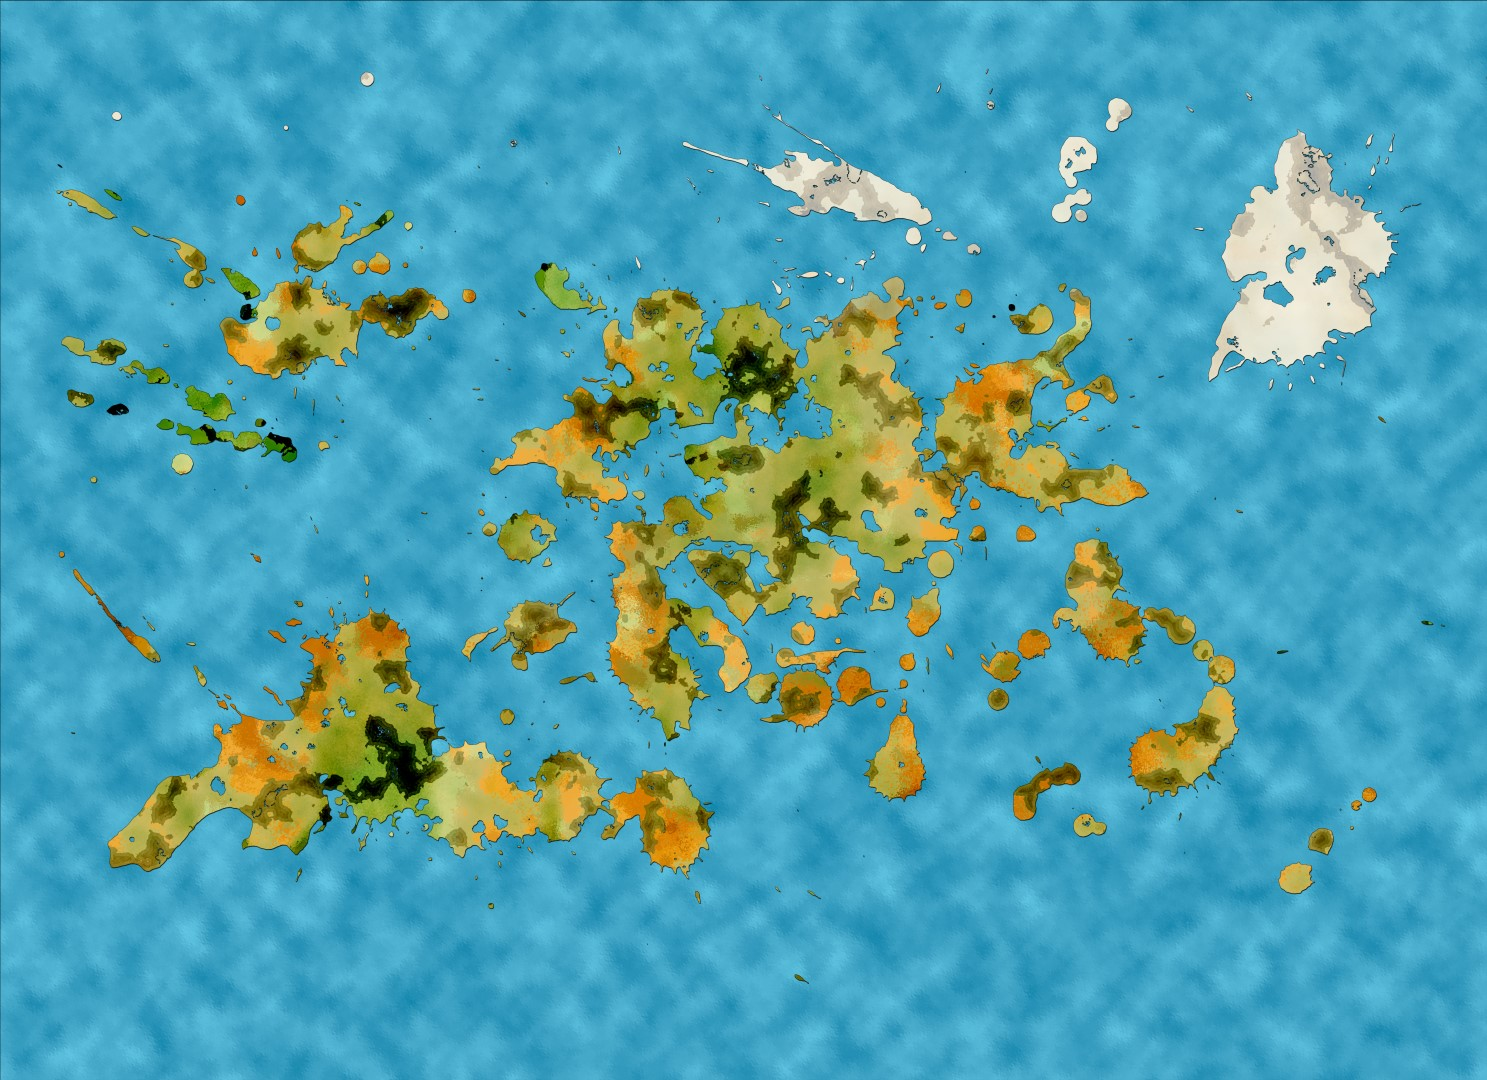 World Map LG0012 (Large)